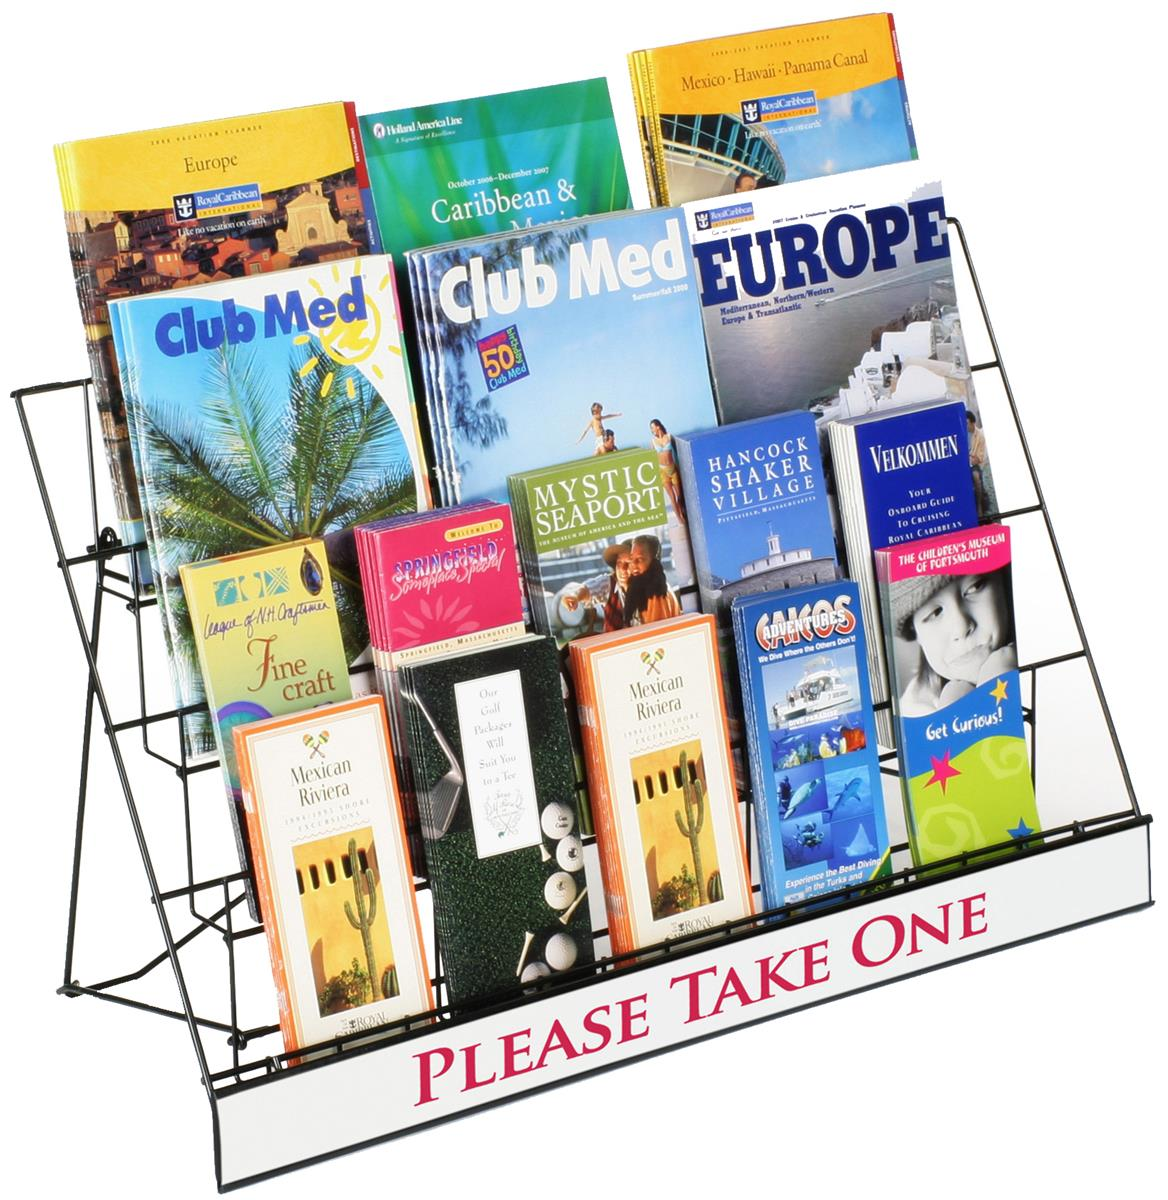 Countertop Book Display These Countertop Displays Are Ideal For Presenting Many